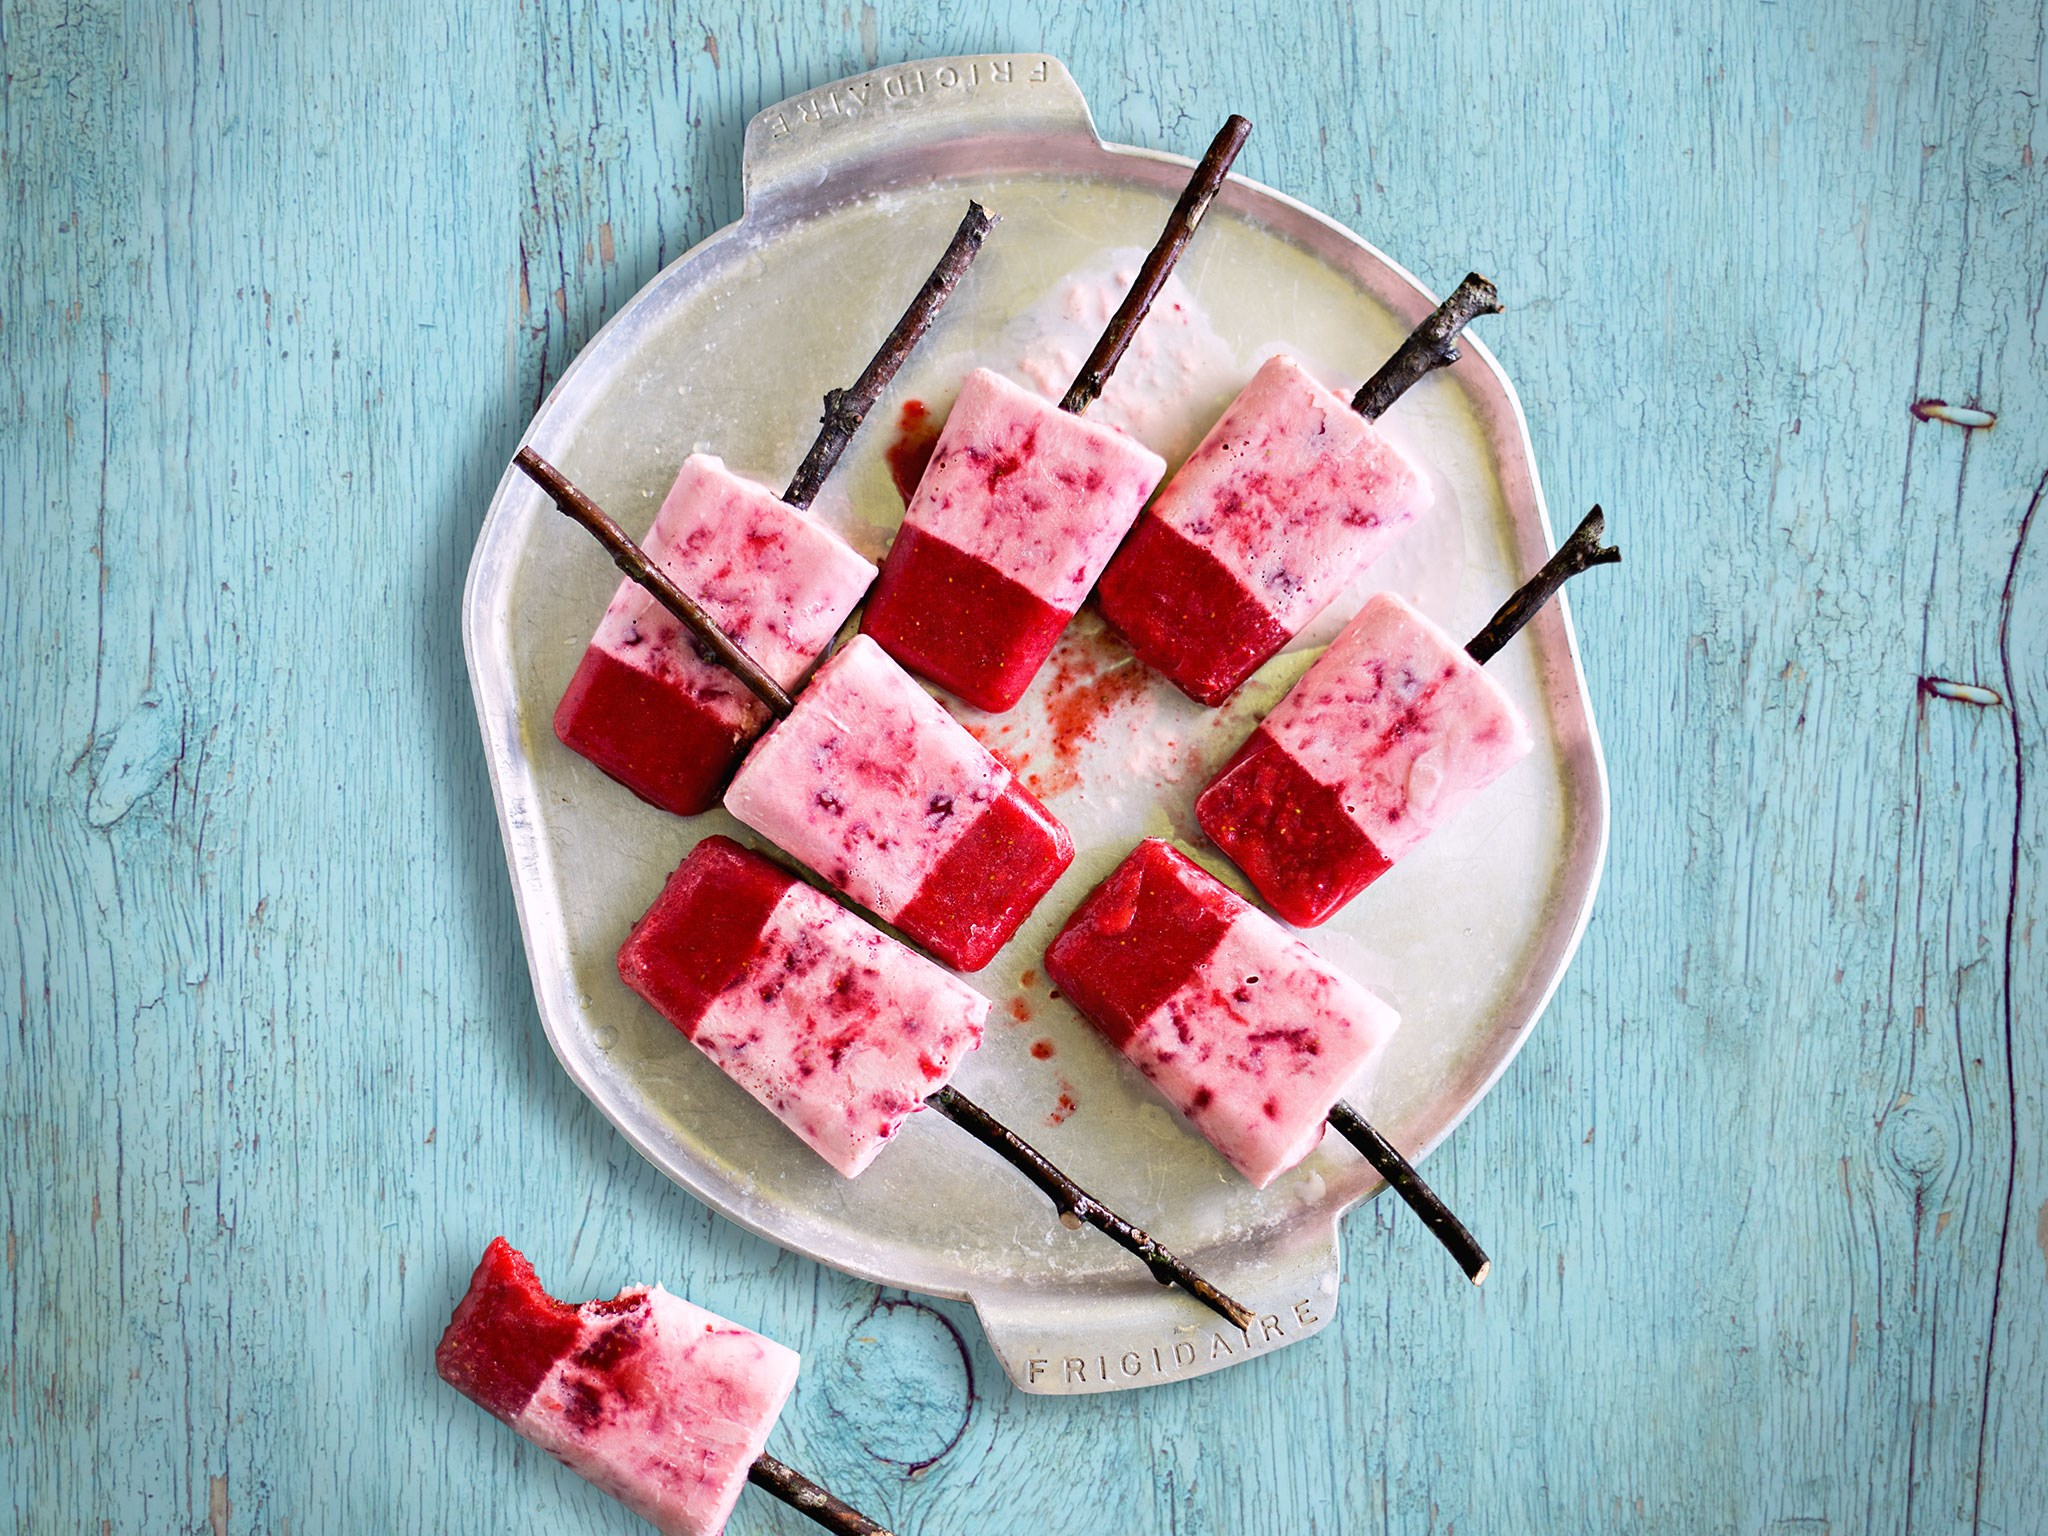 These [homemade strawberry toppas](http://www.foodtolove.co.nz/recipes/homemade-strawberry-toppas-21676) are a sublime relationship between strawberries and cream – with a cheeky, grown-up twist.